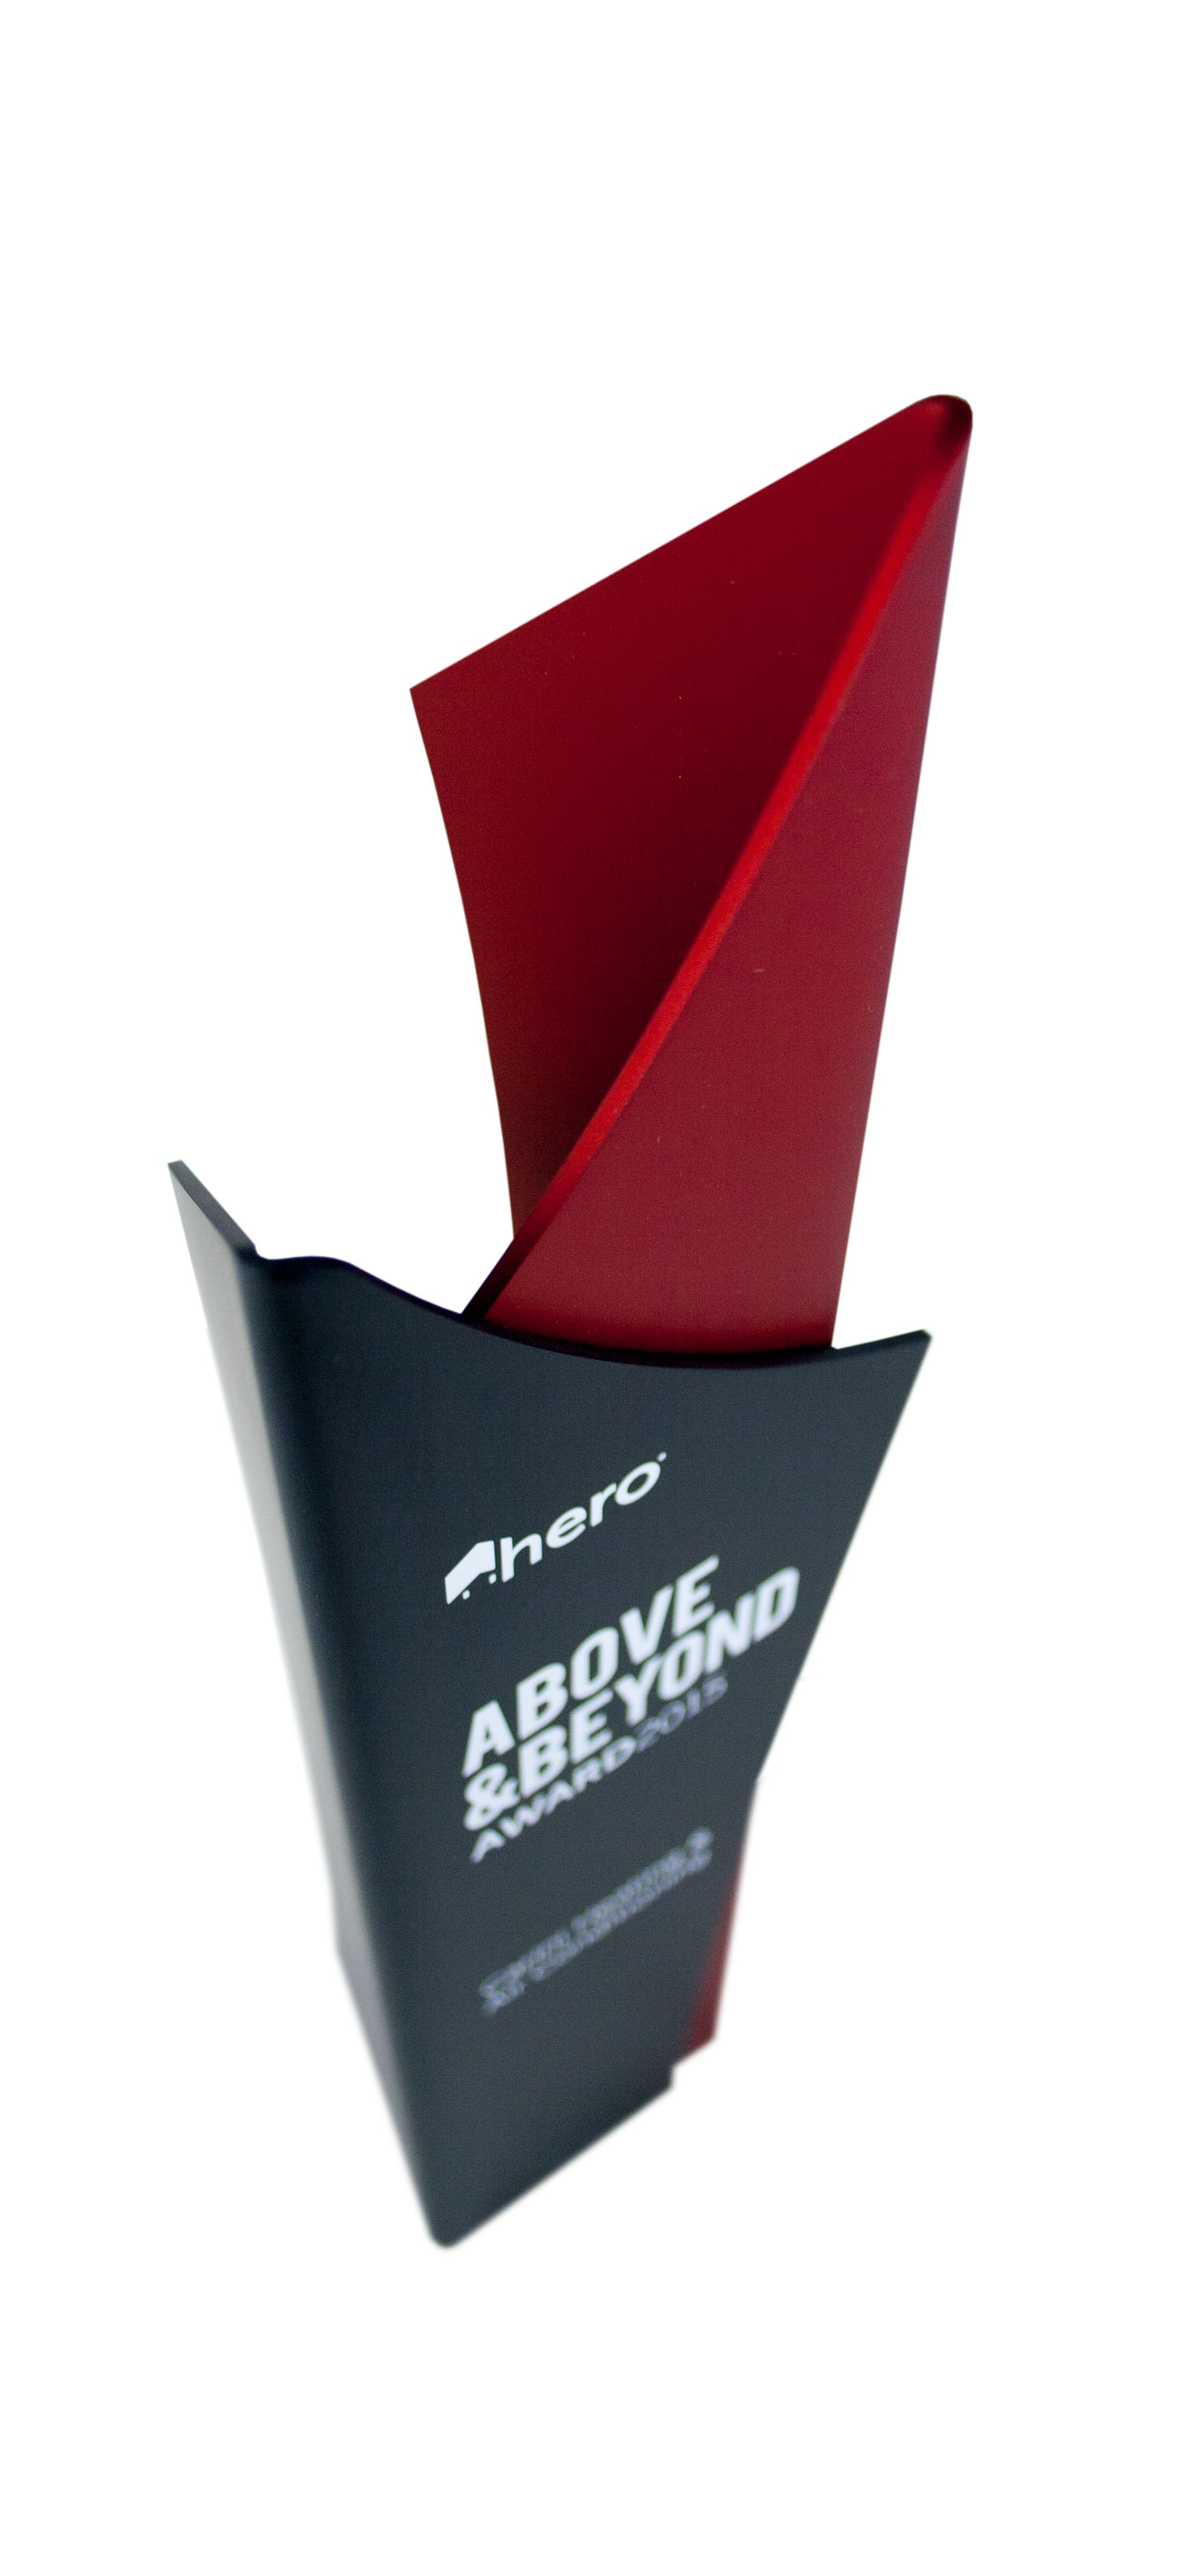 Unity tall modern trophy creative design beautiful materials not glass - Our New Unity Tall Trophy Award Design Is Sure To Impress Made